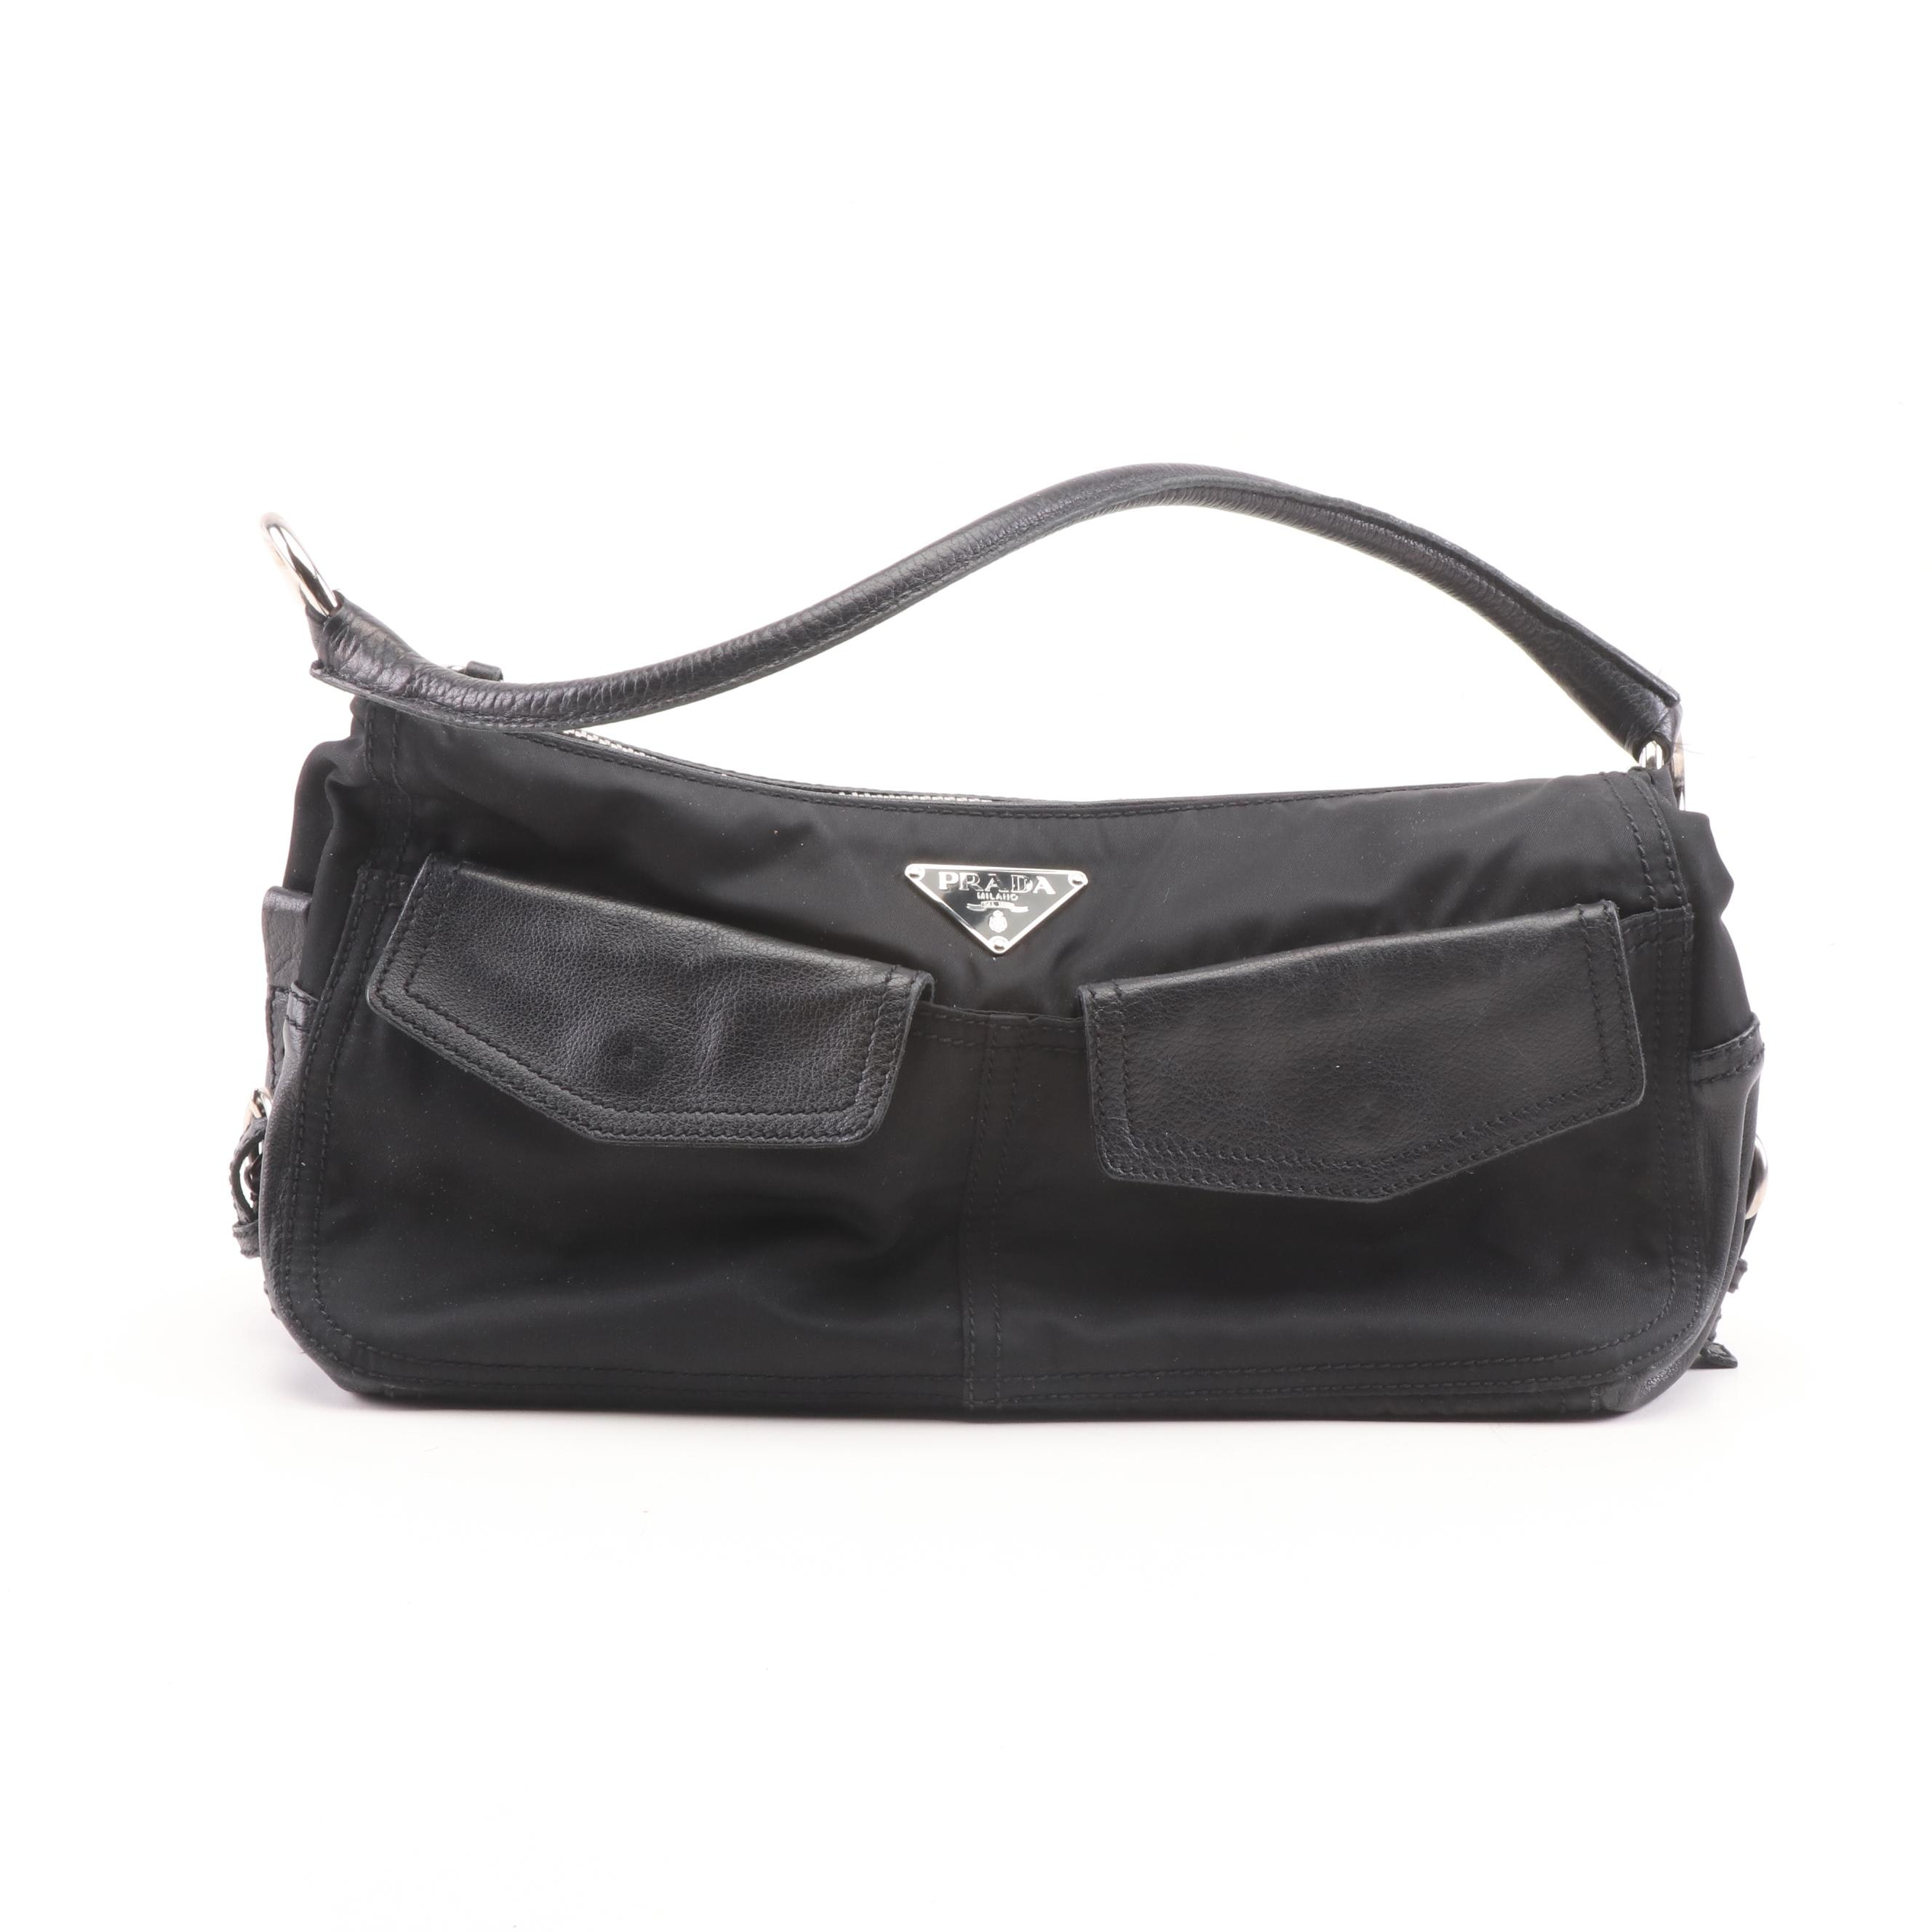 Prada Black Nylon and Leather Baguette Shoulder Bag